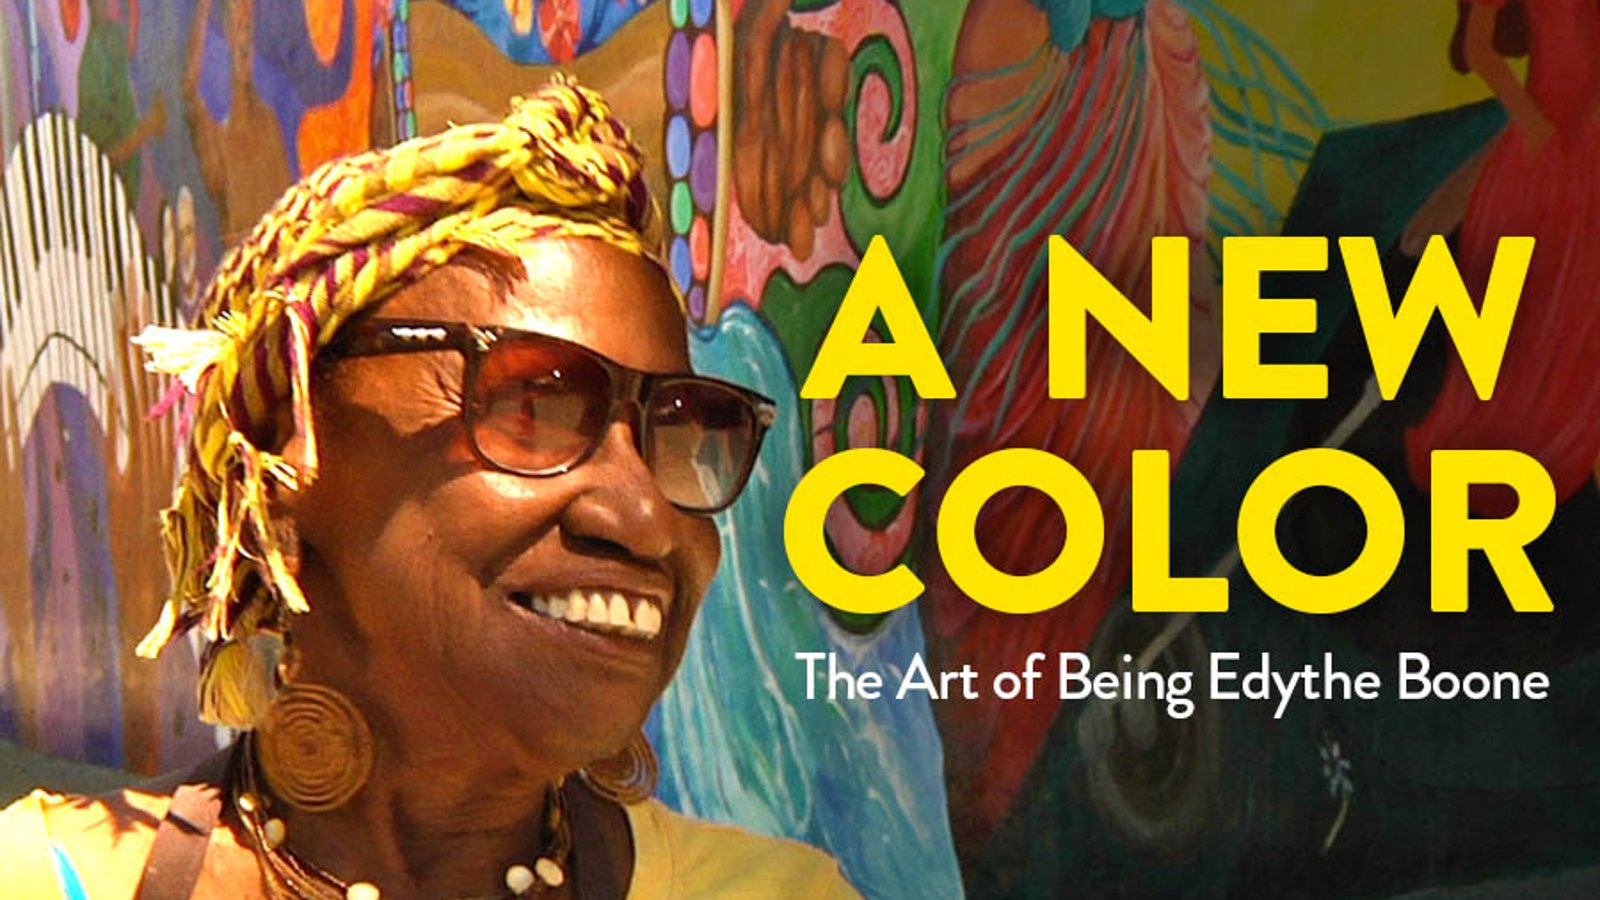 A New Color - The Art of Edythe Boone